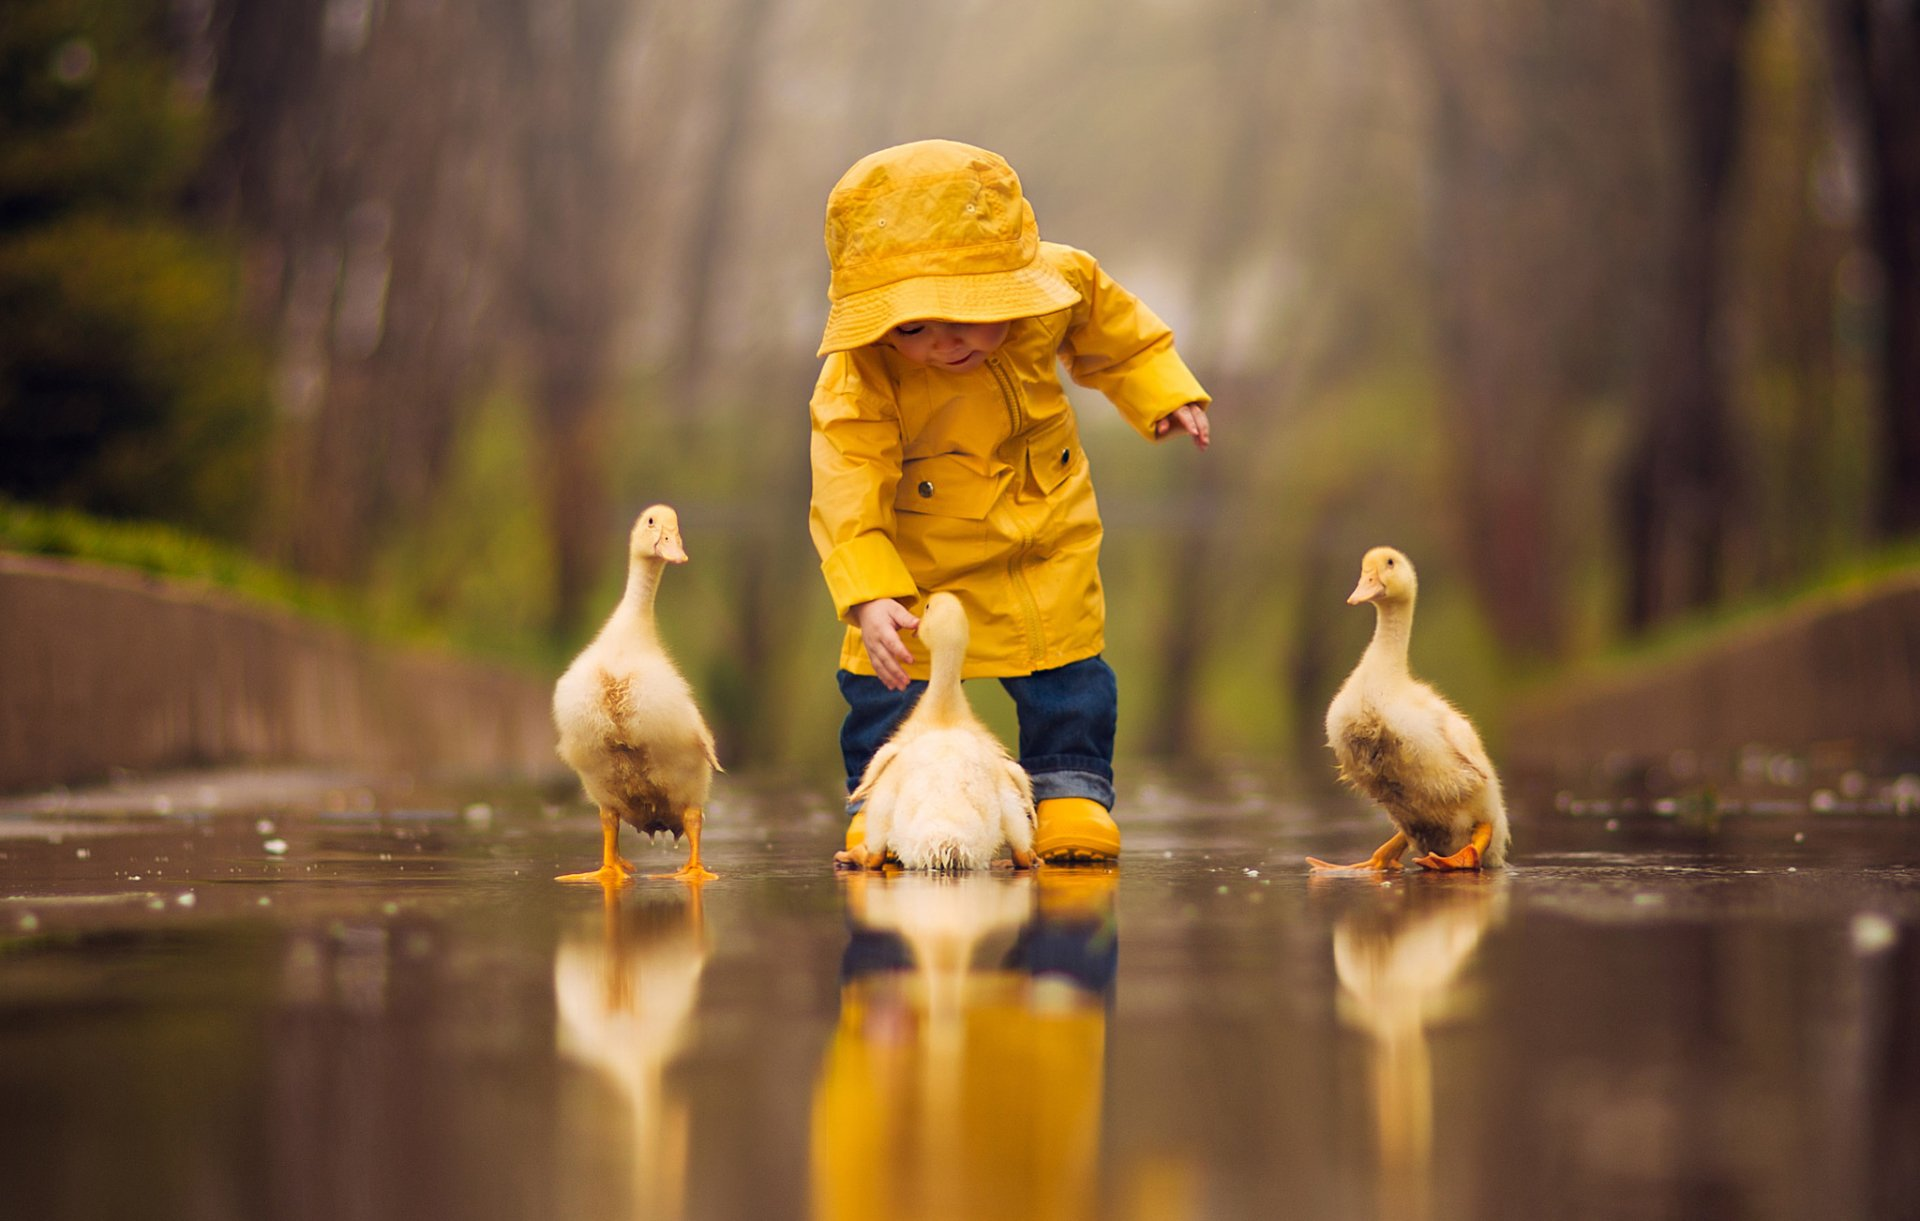 Photography - Child  Cute Bird Duck Reflection Depth Of Field Wallpaper